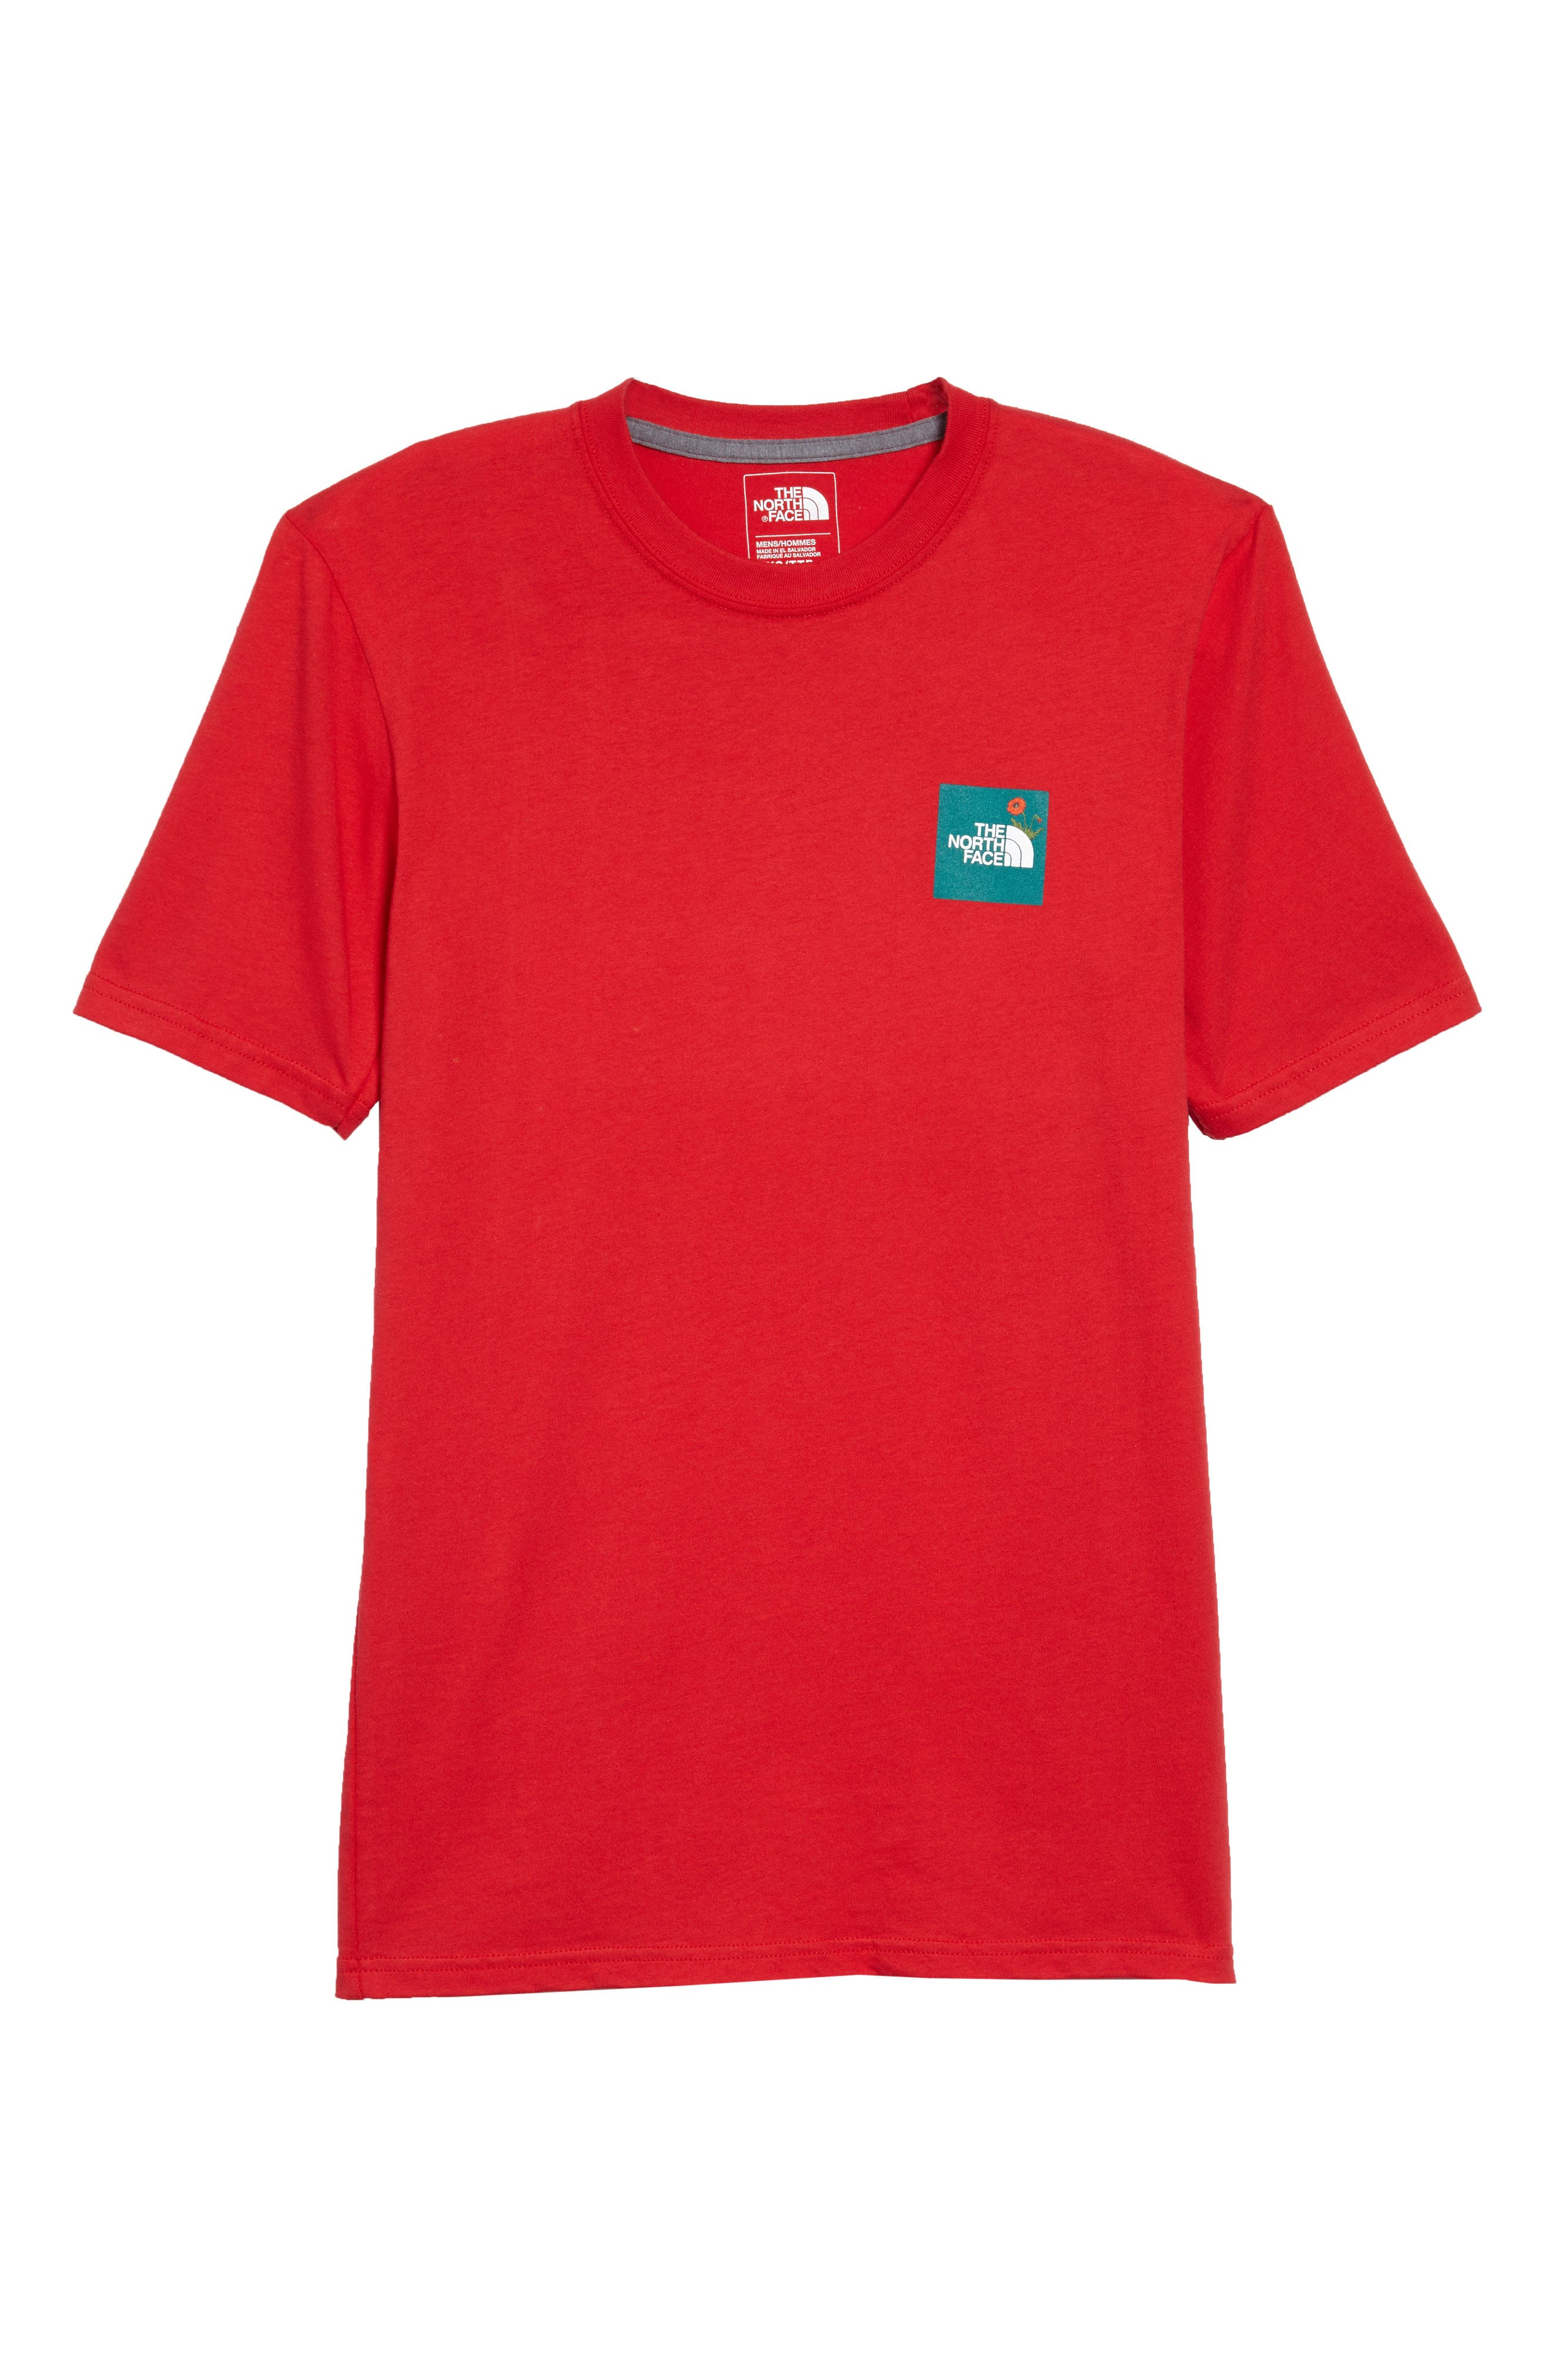 Main Image - The North Face Graphic Unisex T-Shirt